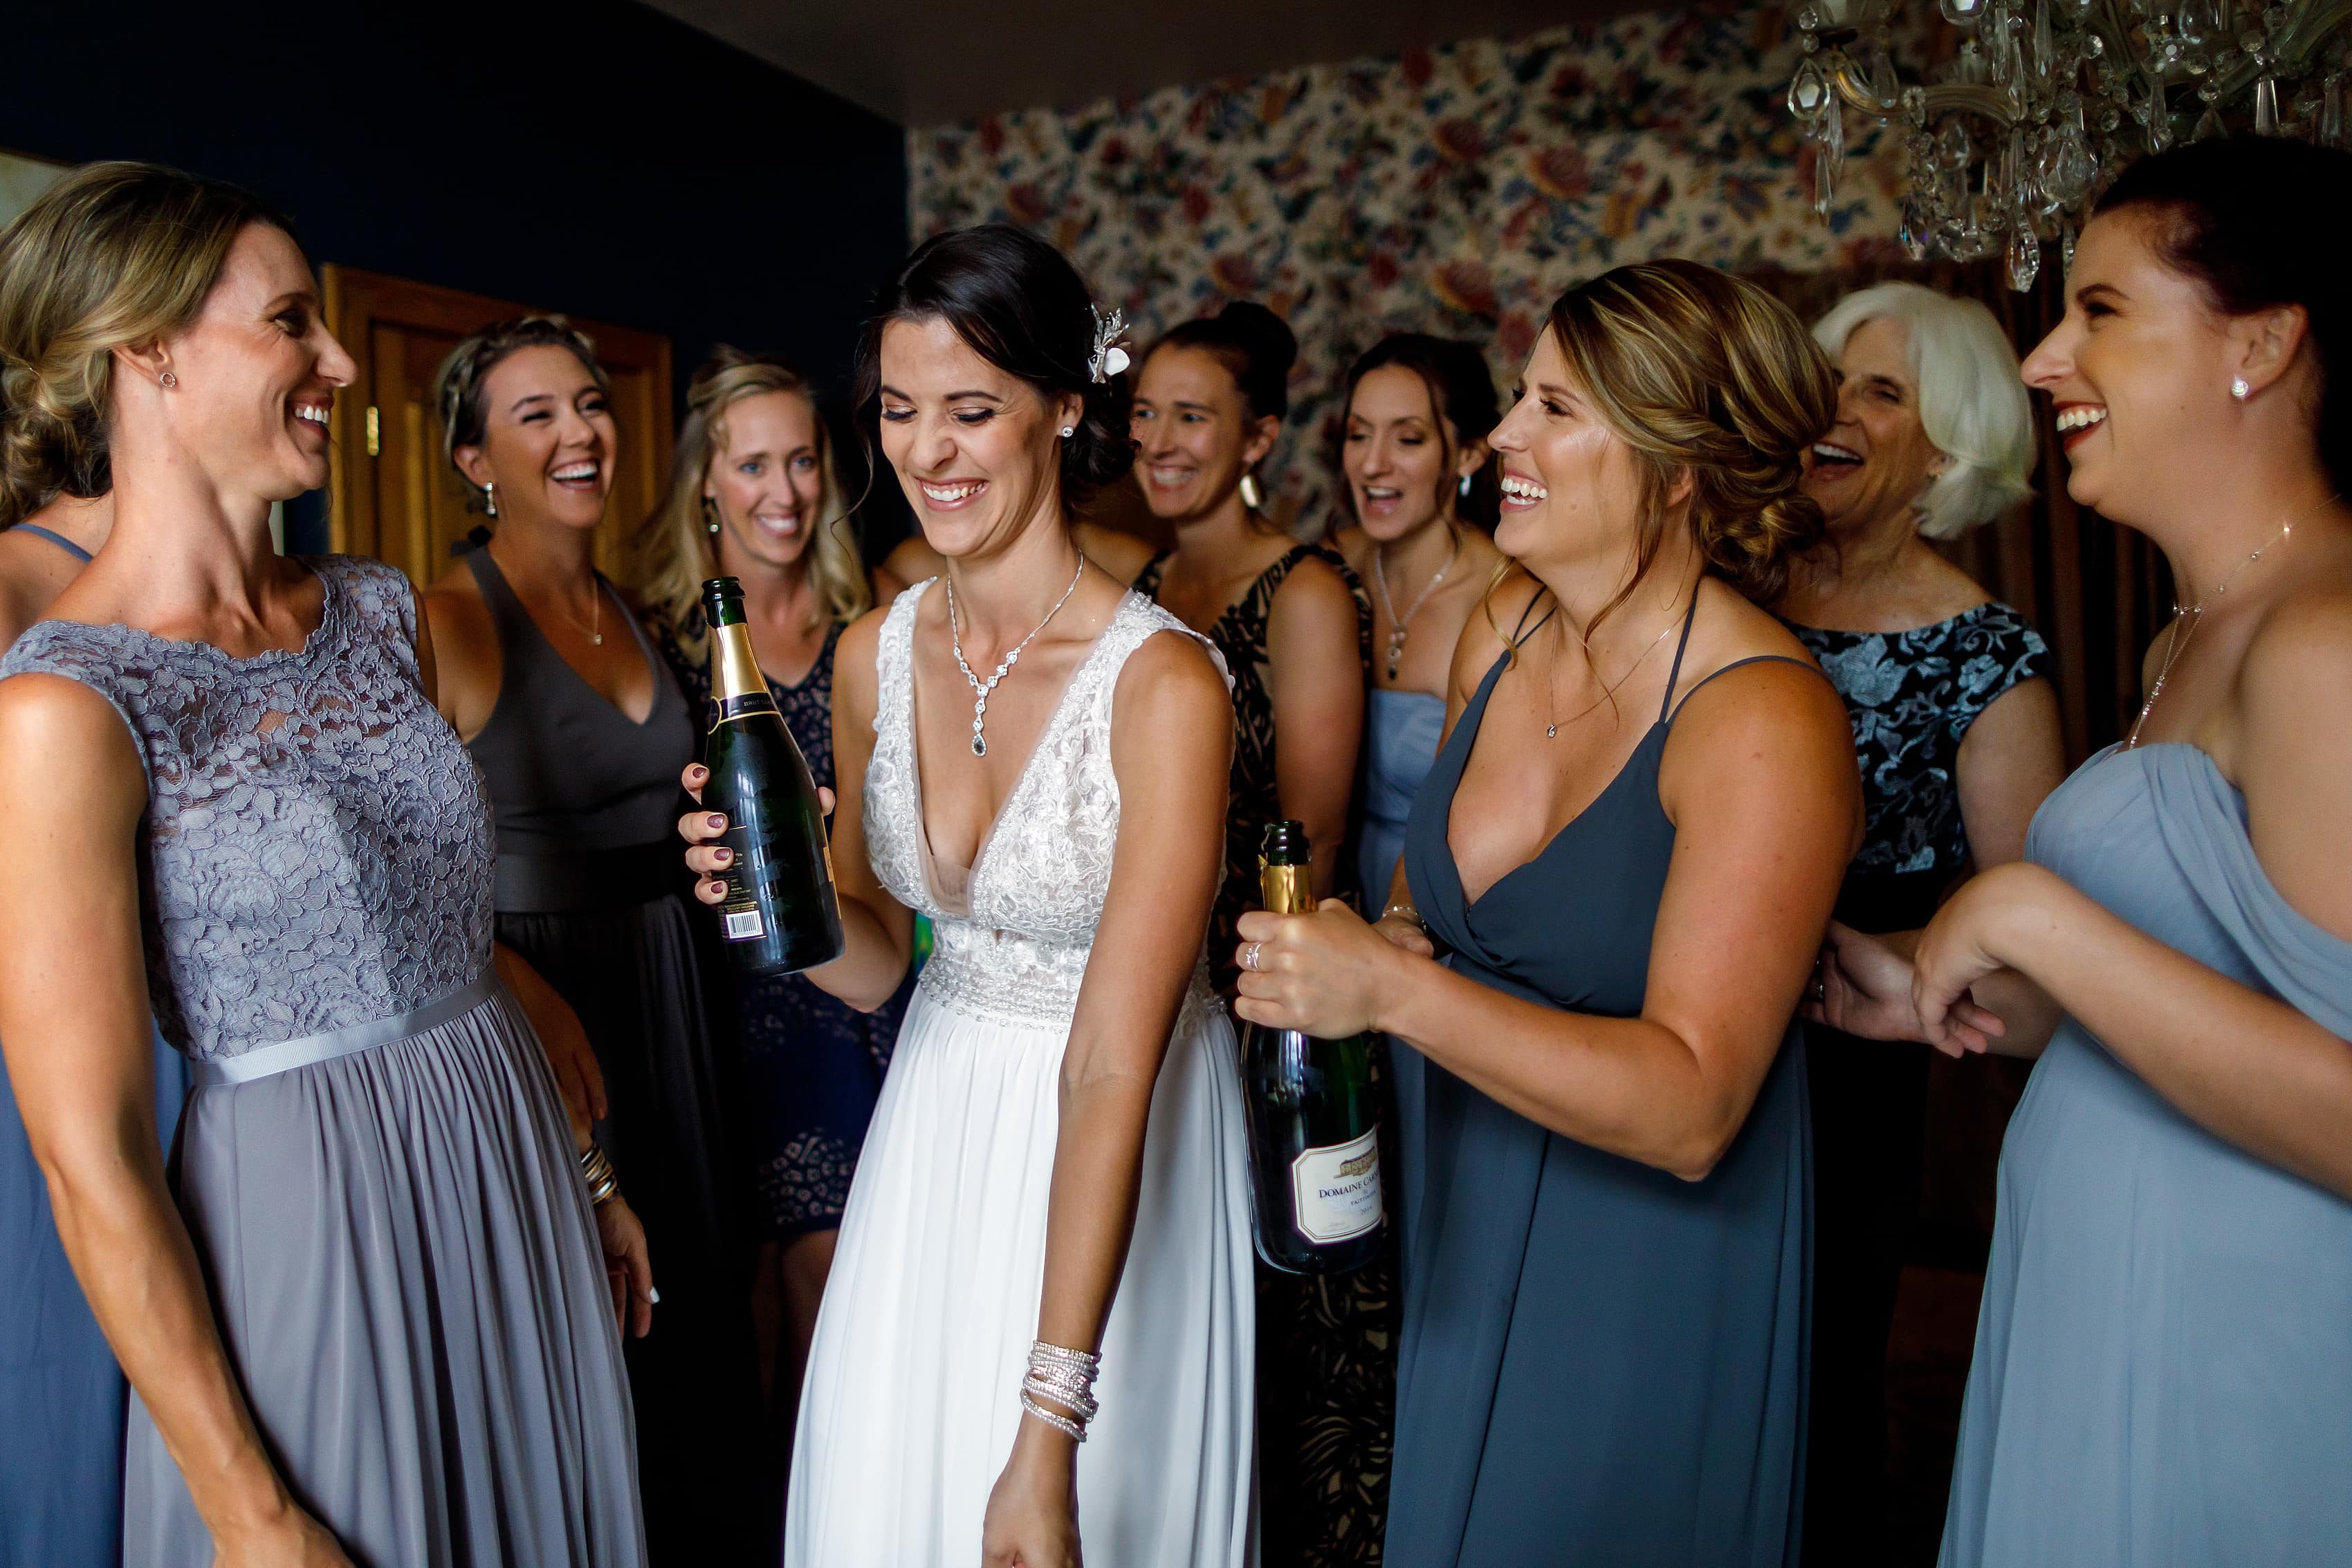 Bride laughs with friends before wedding at Lionsgate Event Center